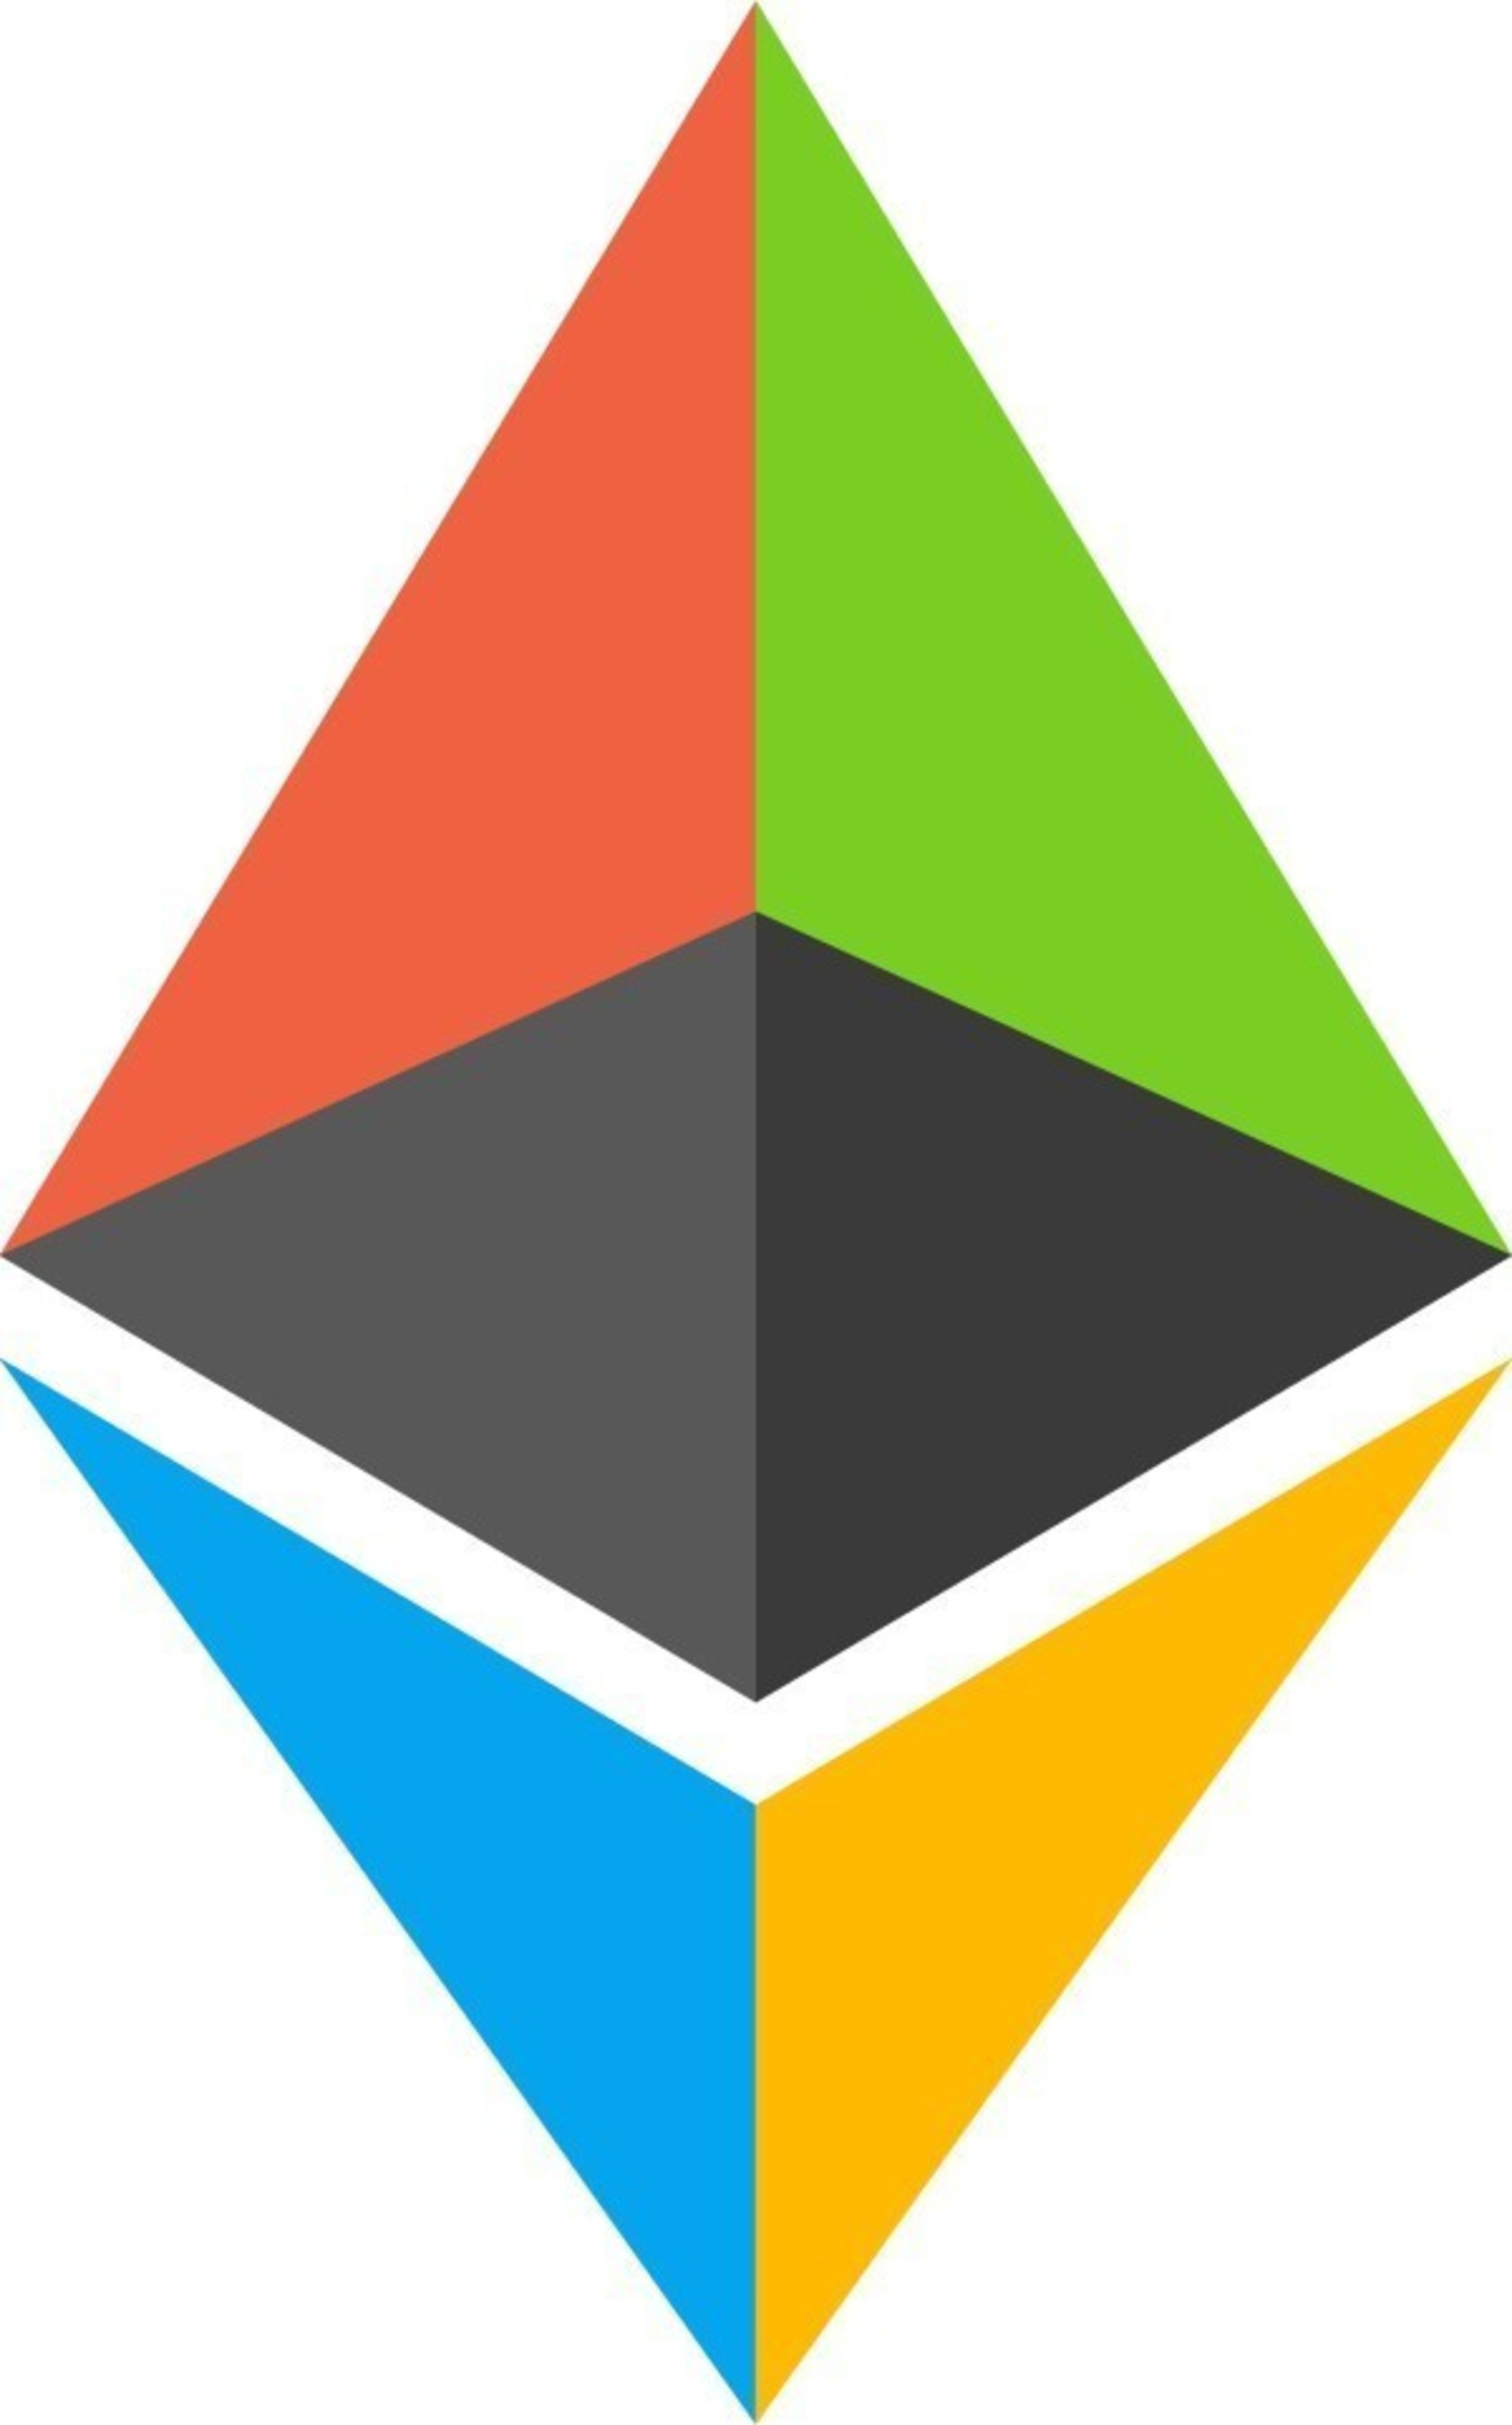 Ethereum Solidity now available in Microsoft Visual Studio